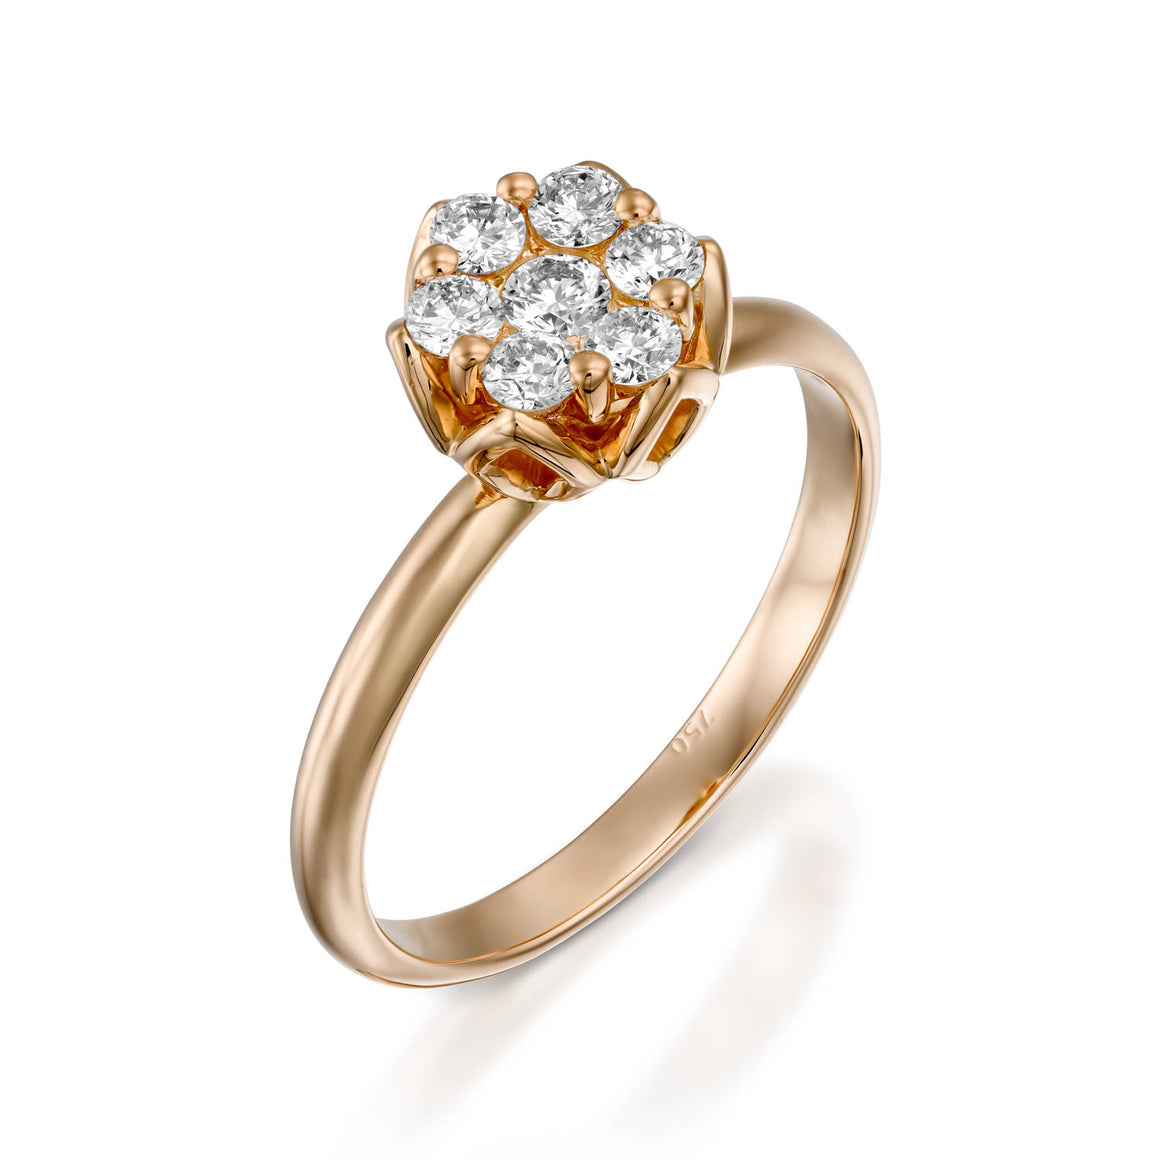 RS744AB-Dainty flower diamond ring Rose gold